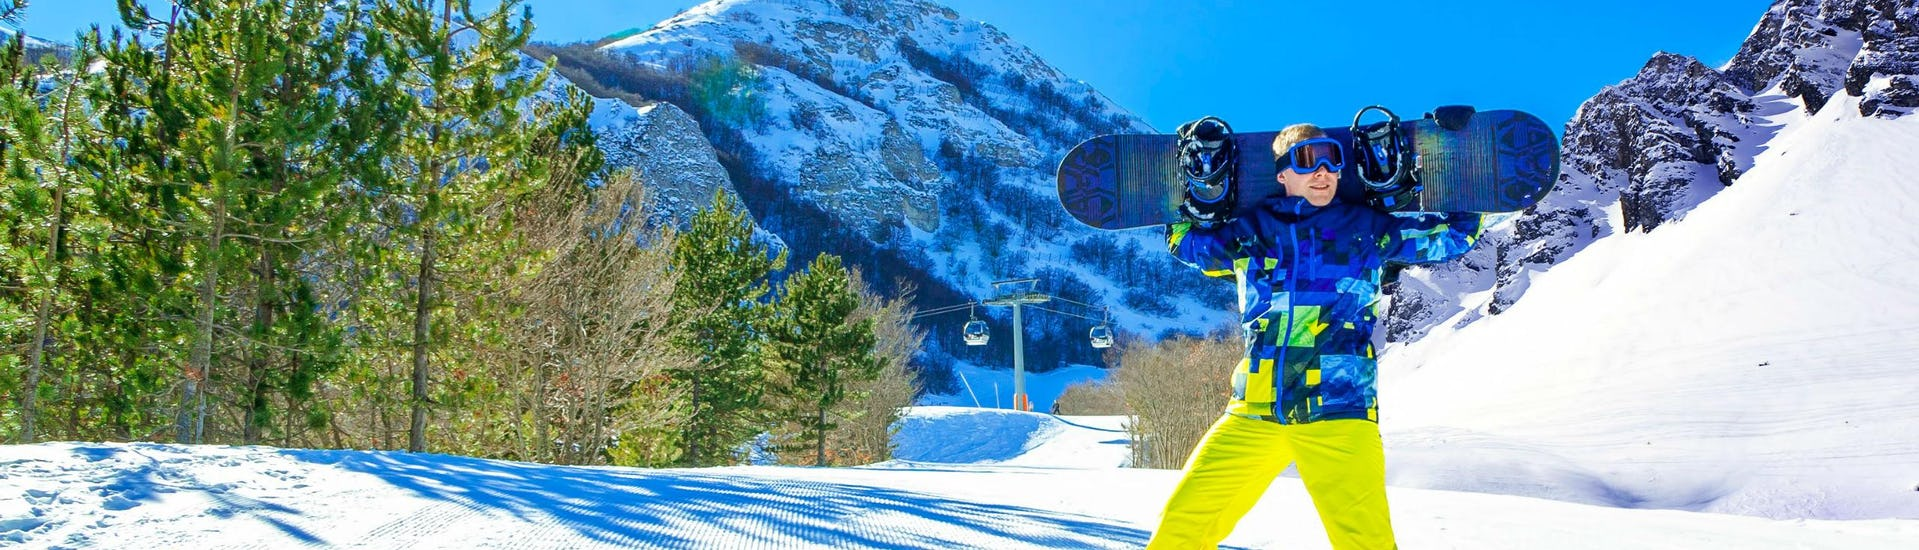 A snowboarder is posing for the camera on a sunny ski slope in the Italian region of Abruzzo, where visitors can choose from a wide range of ski lessons offered by the local ski schools.